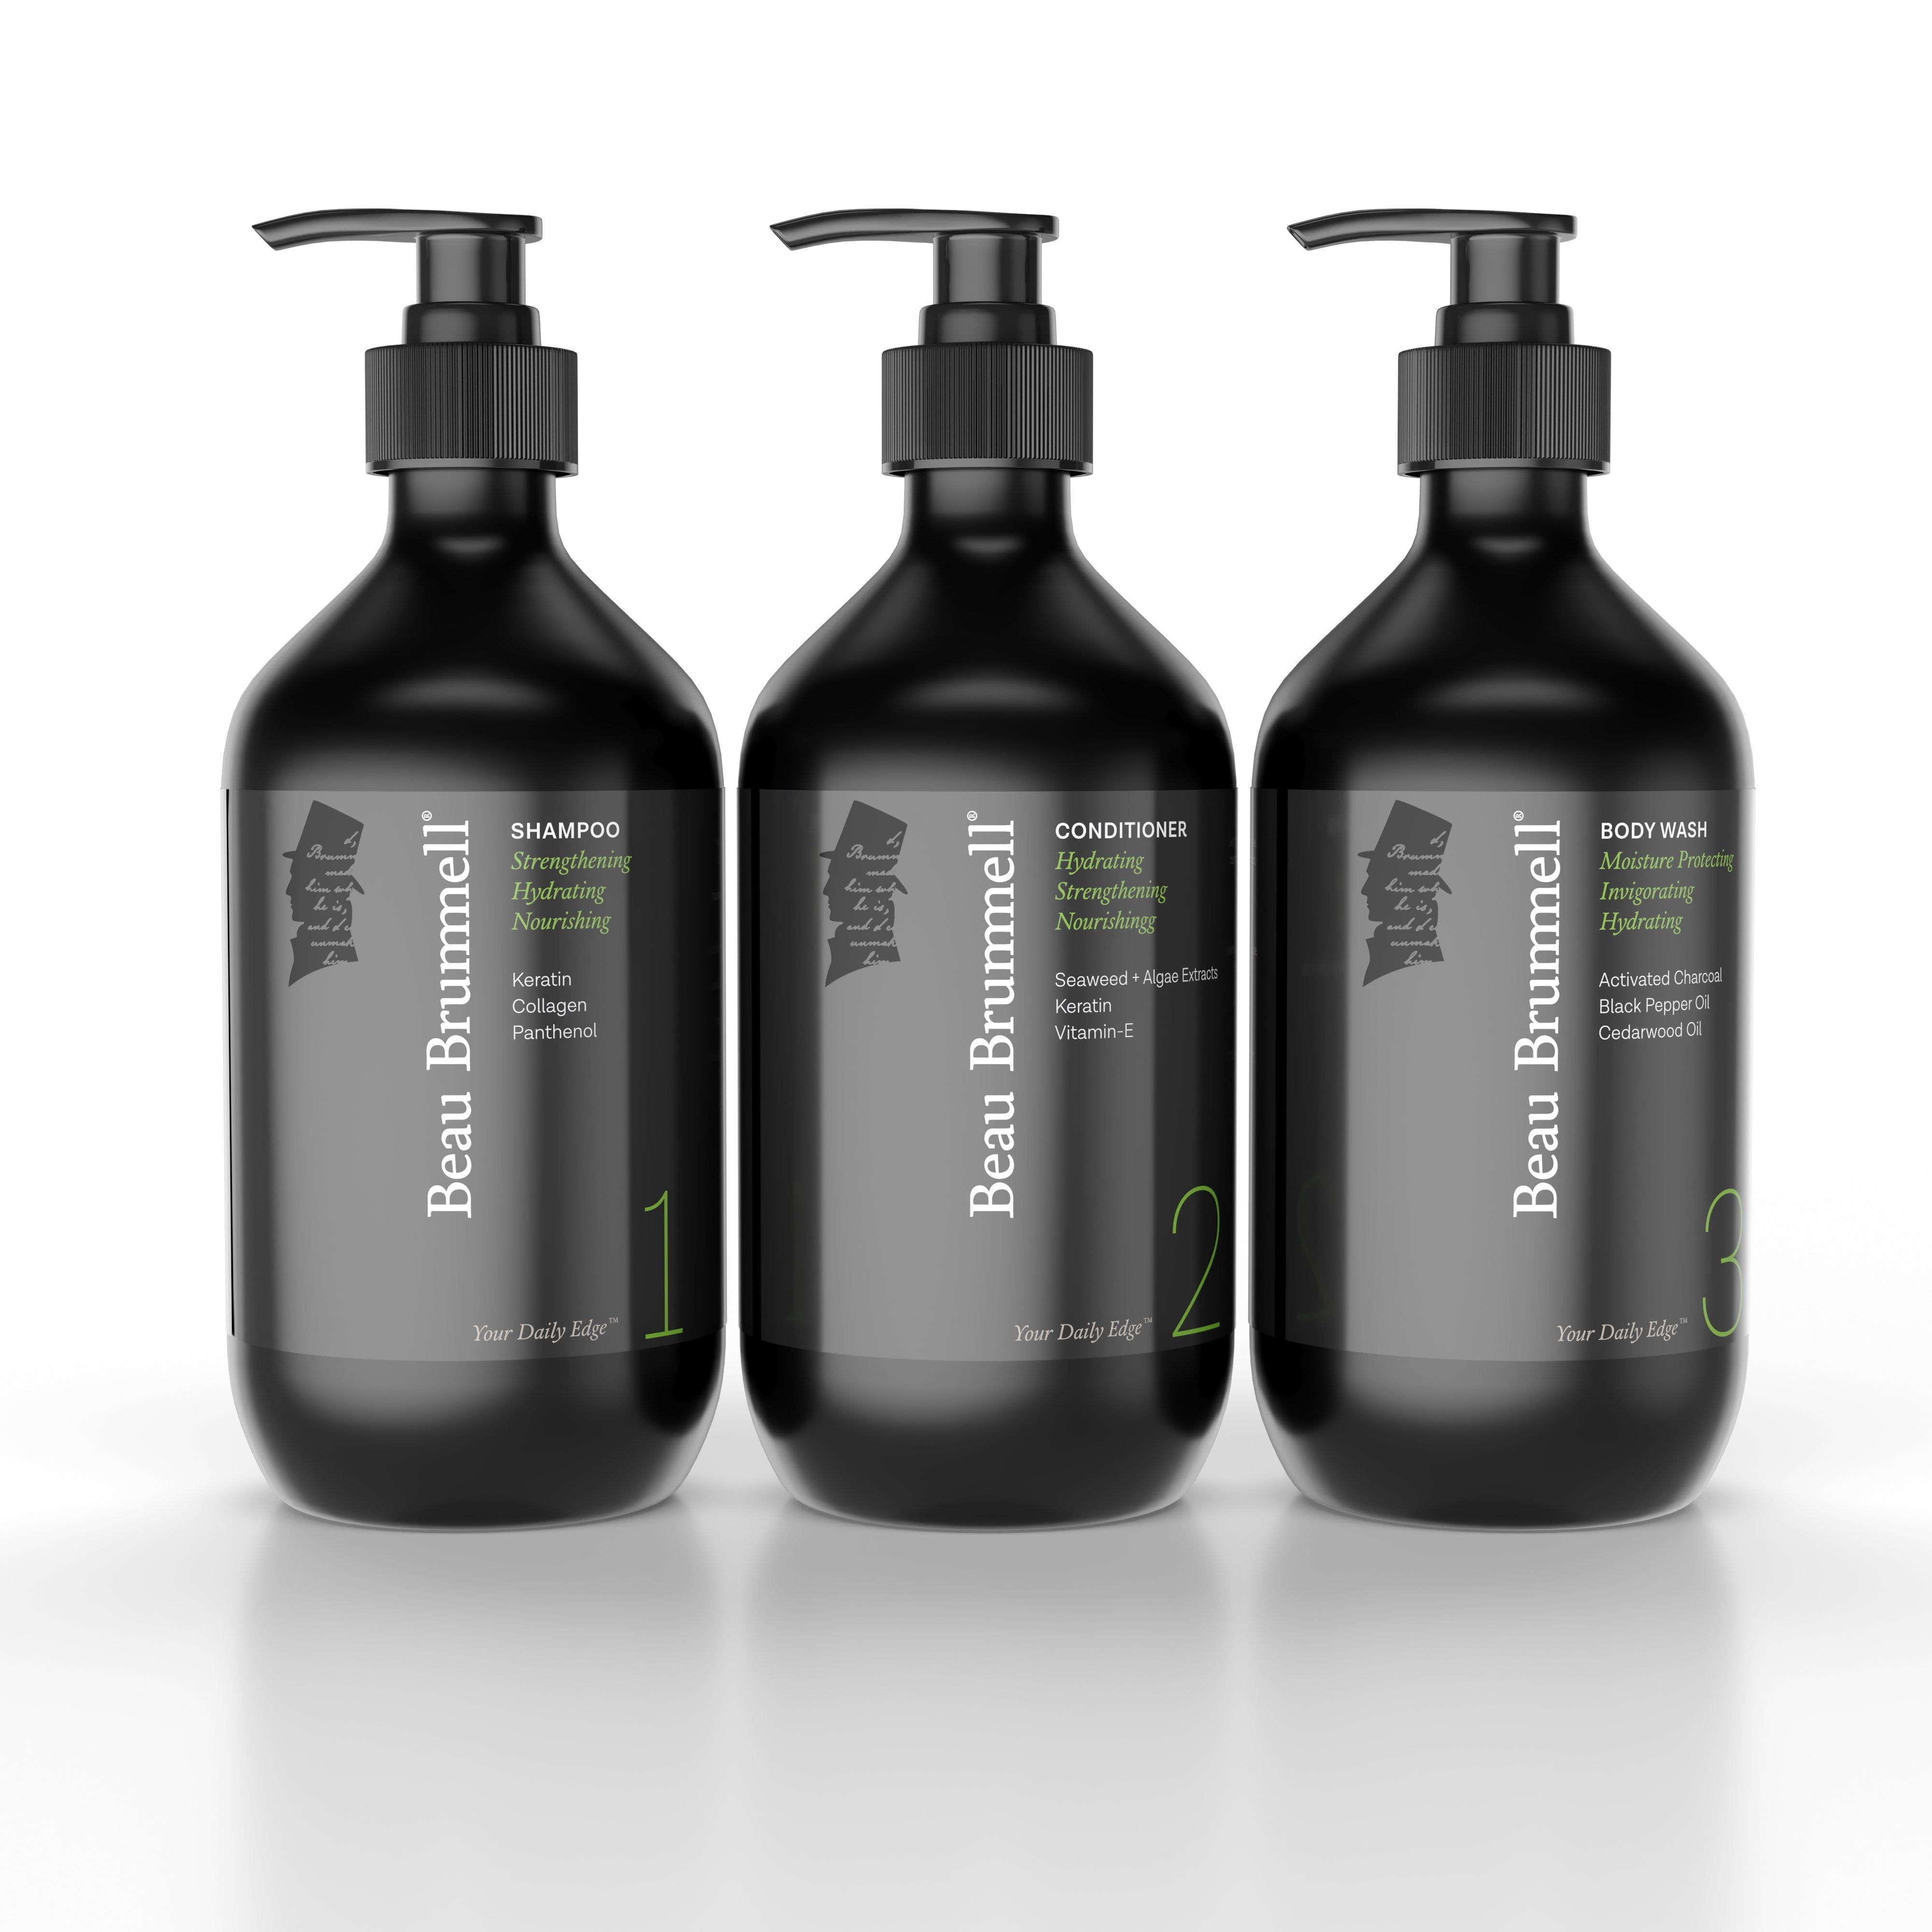 Beau Brummell for Men Shower Z. Shower Essentials Set